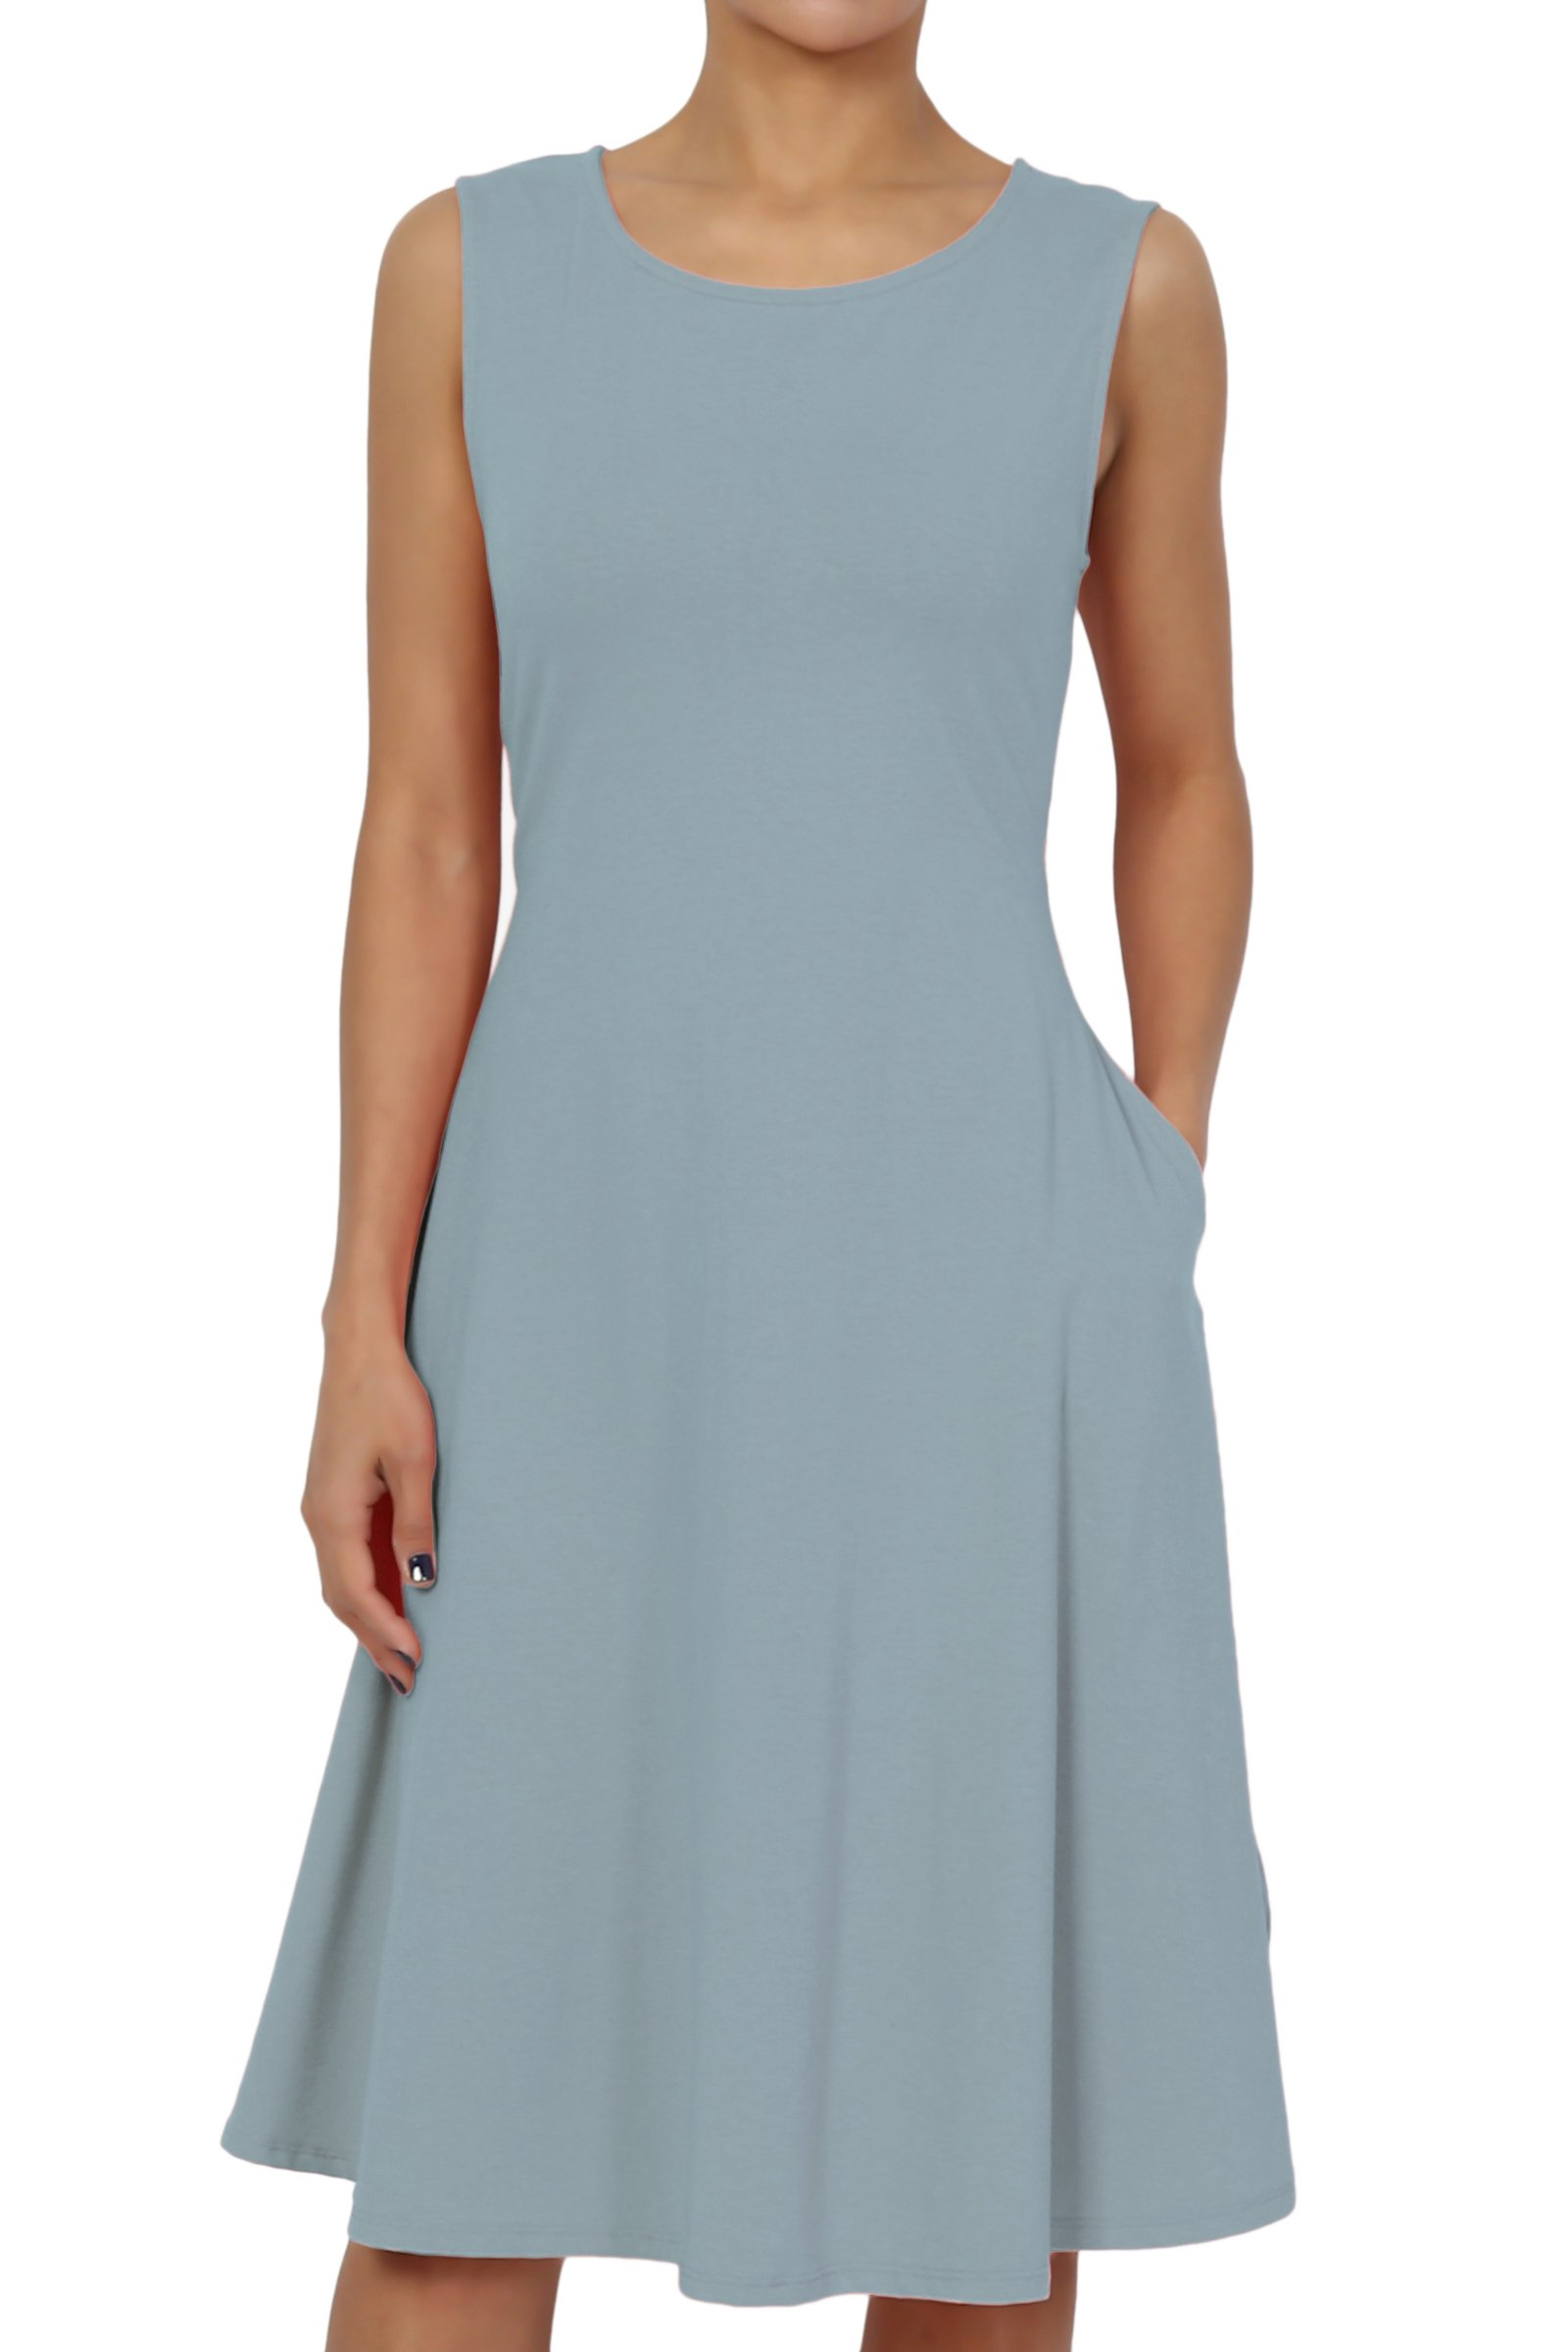 TheMogan Women's Sleeveless Pocket Stretch Cotton Fit & Flare Dress Ash Blue 1XL